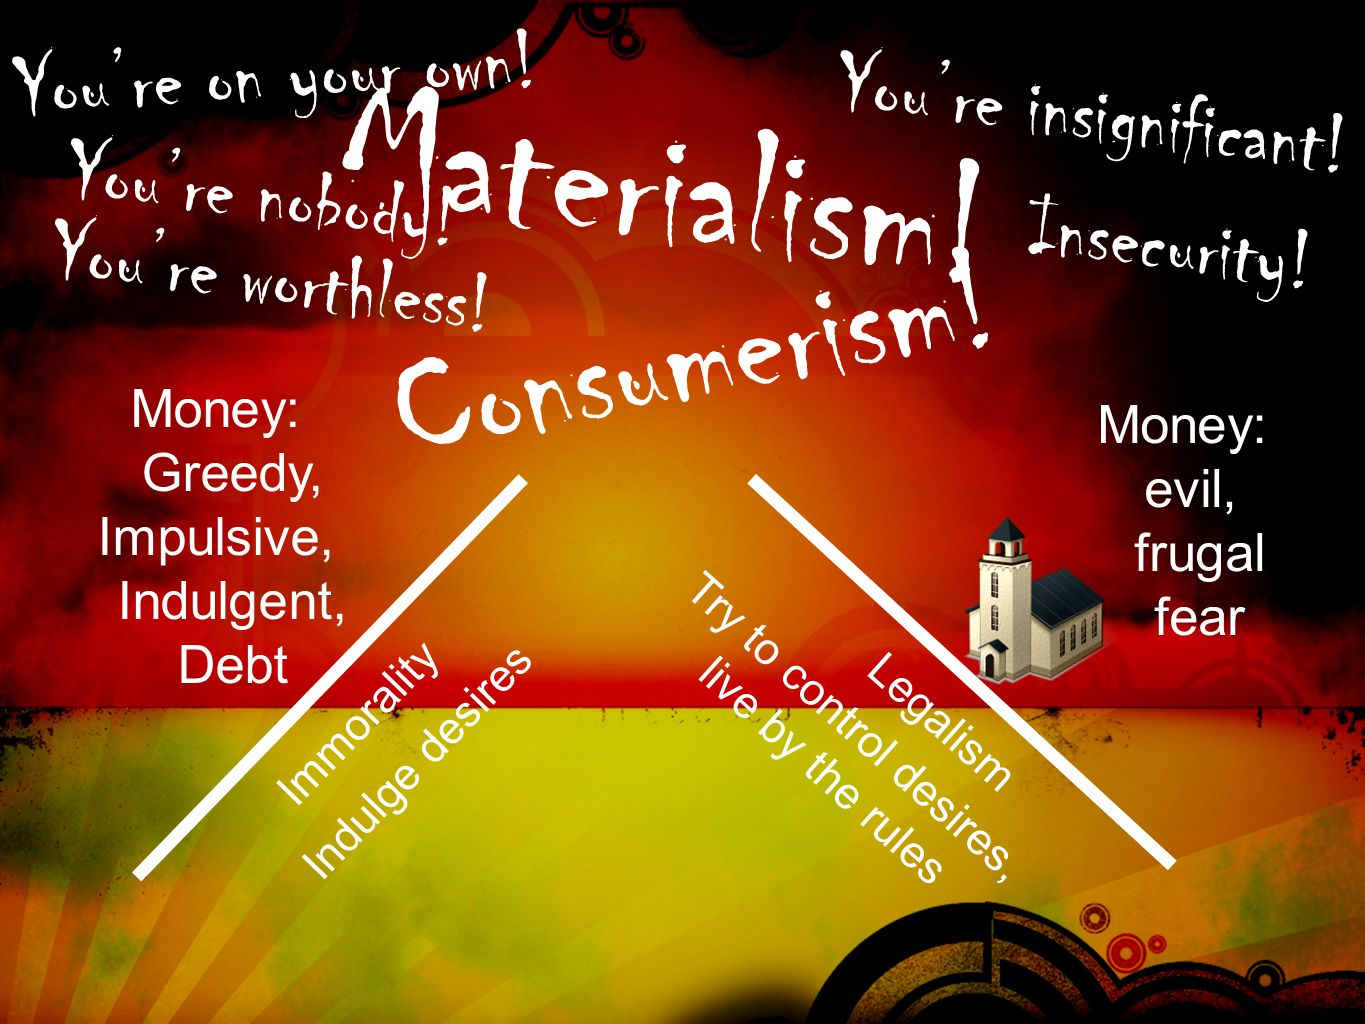 Legalism Immorality Indulge desires Try to control desires, live by the rules Money: evil, frugal fear Money: Greedy, Impulsive, Indulgent, Debt Mater